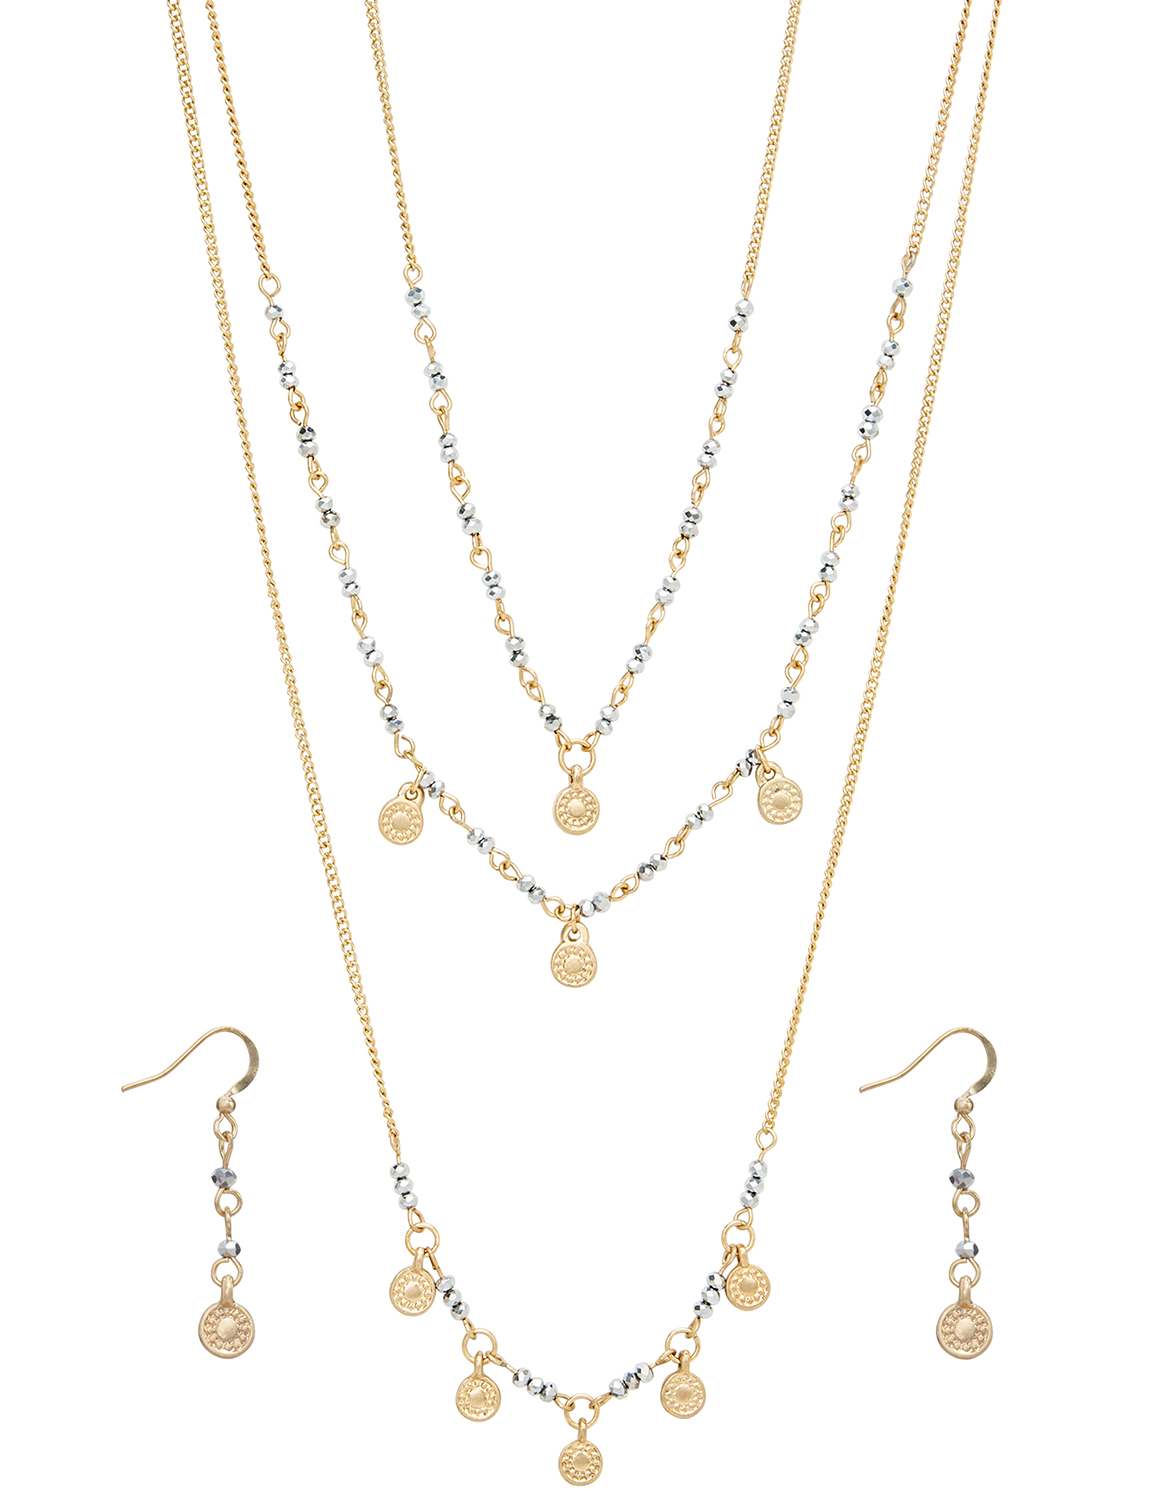 Gold Medallion Beaded Layered Necklace and Earring Set - Gold - Front